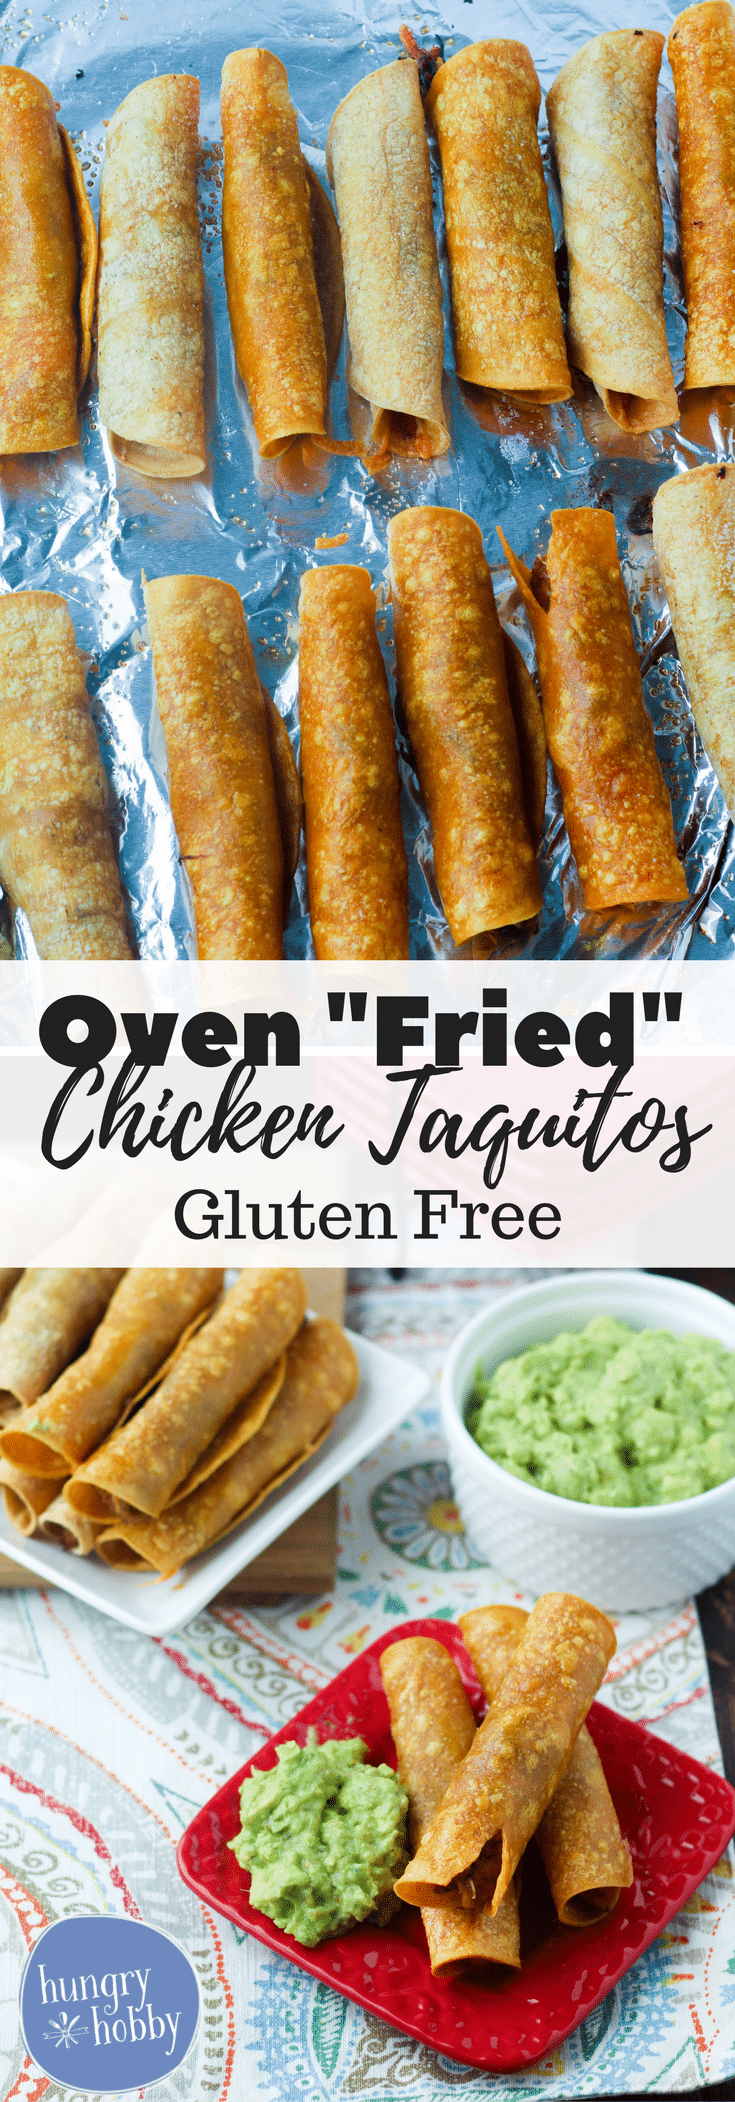 "Oven ""Fried"" Chicken Taquitos are a healthy twist on your favorite Mexican Food appetizer, save tons of calories by baking instead of frying!"